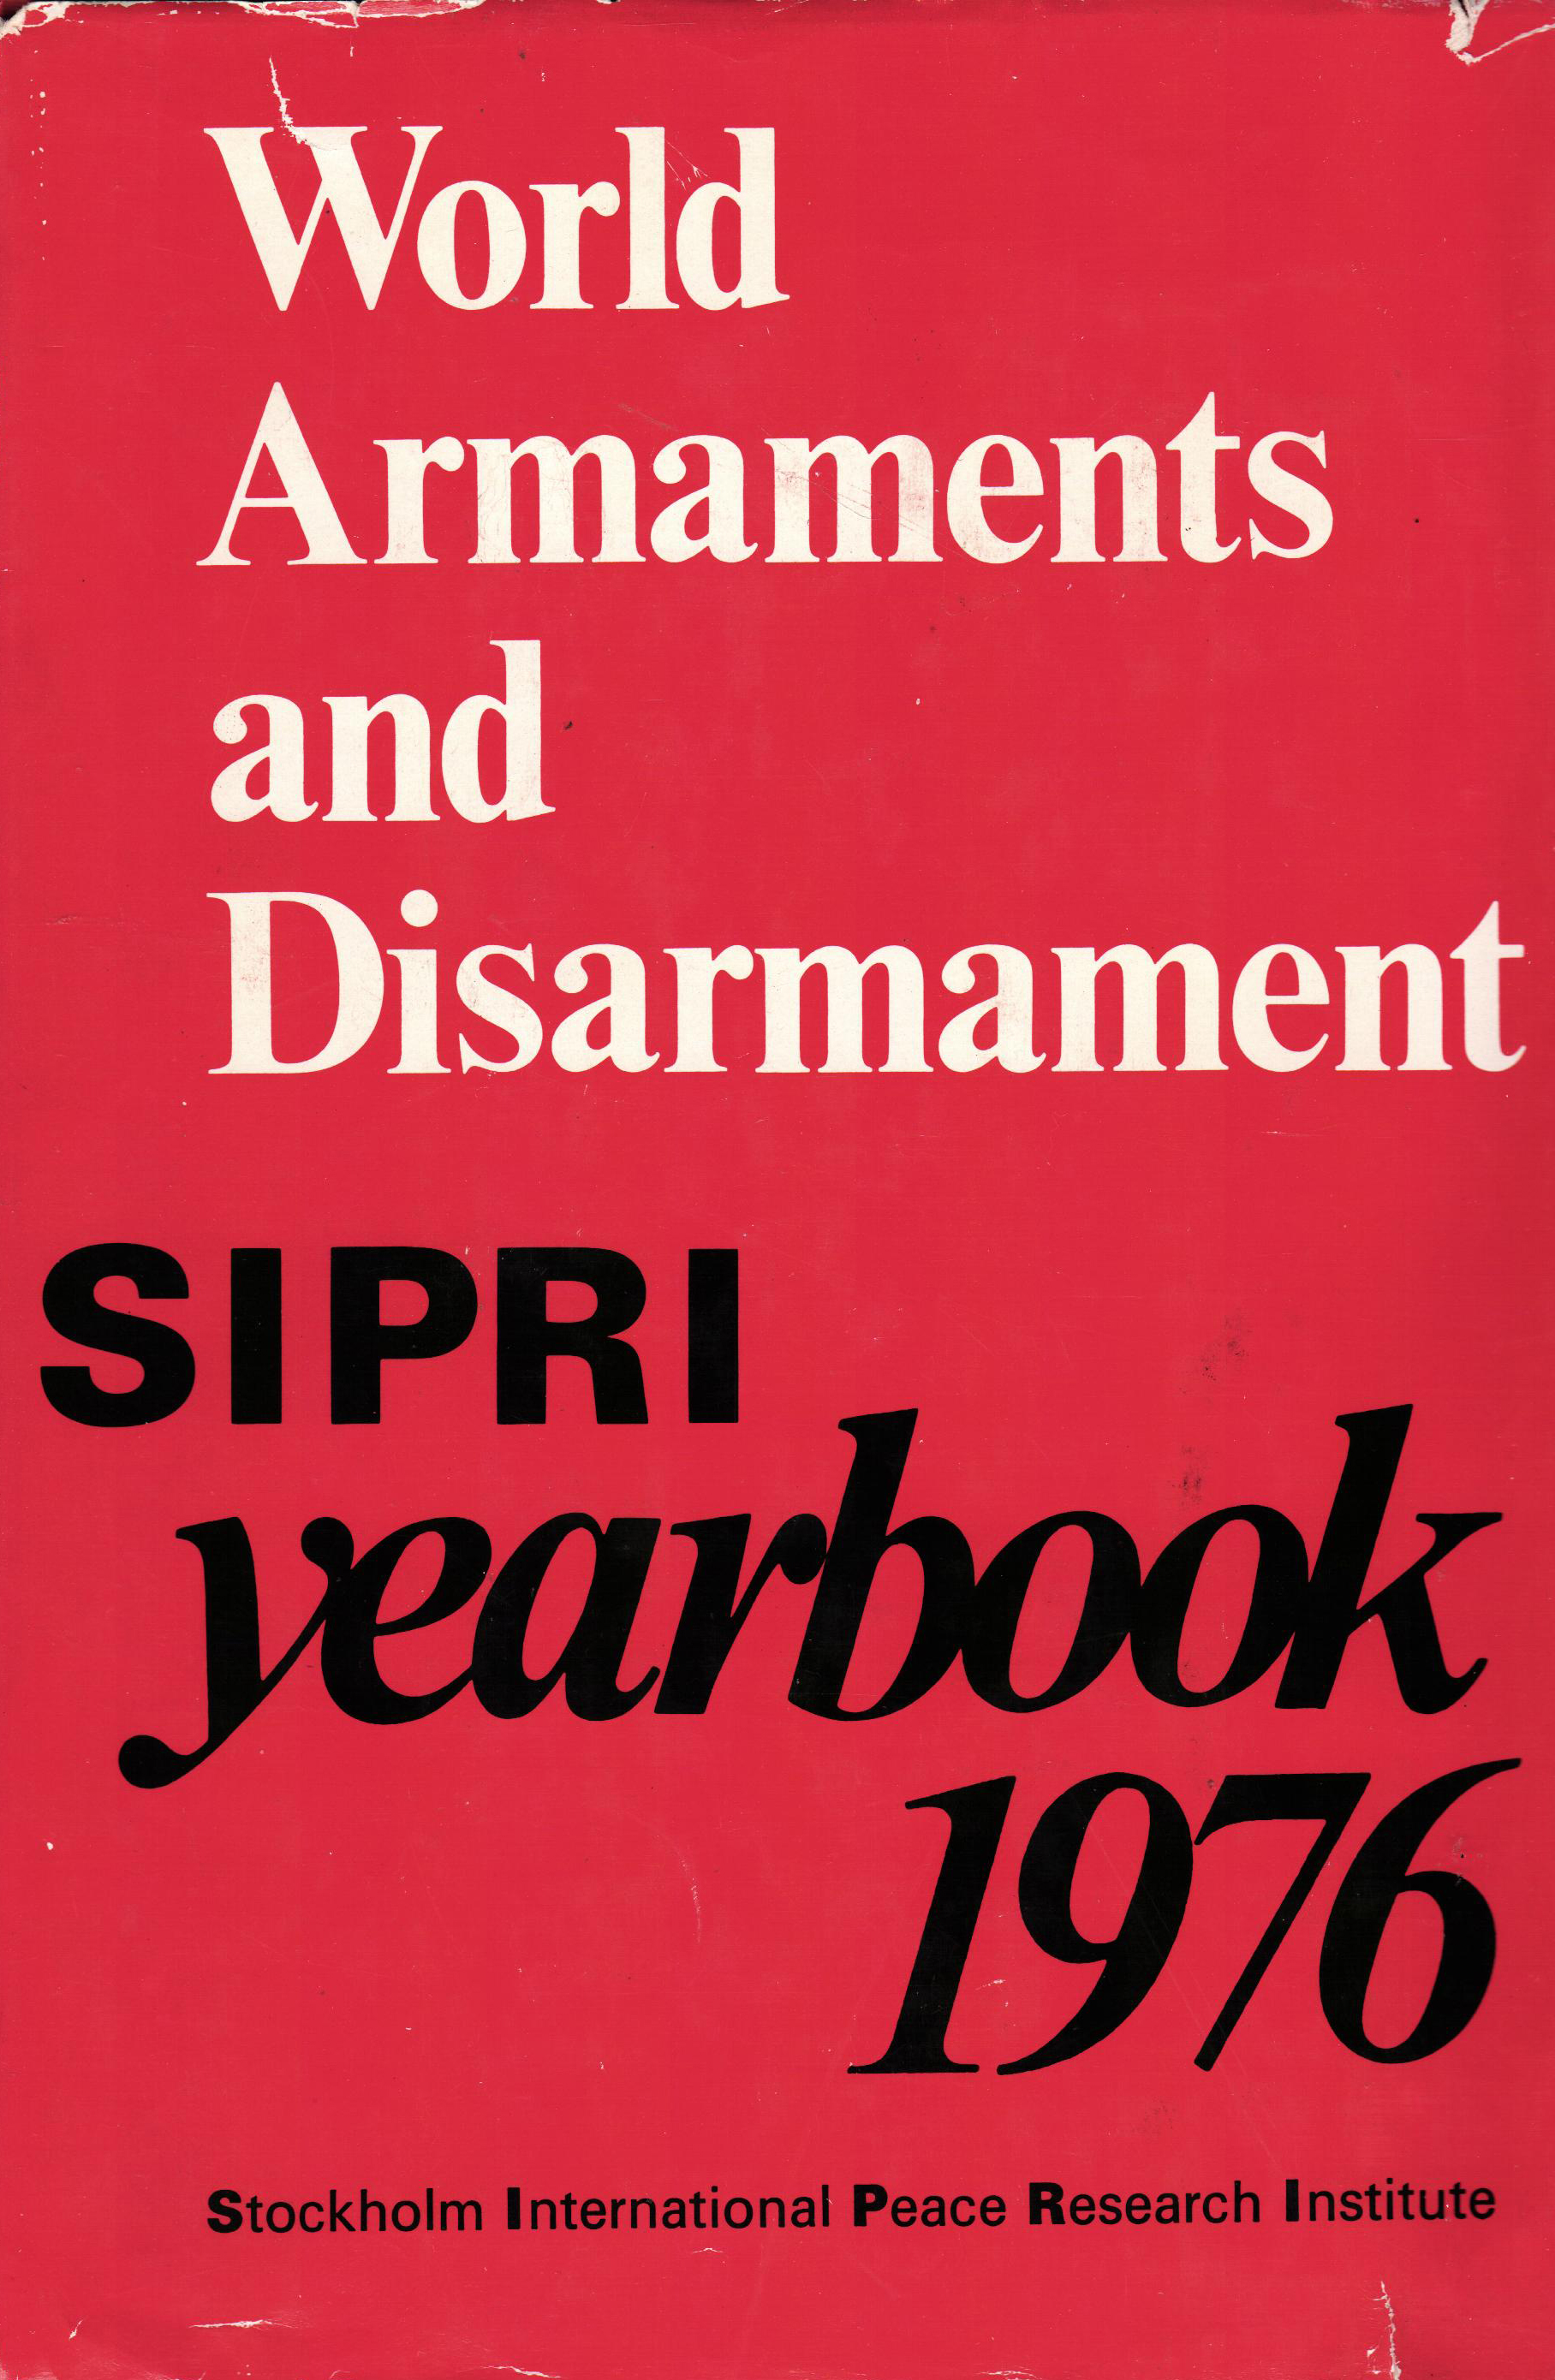 SIPRI yearbook 1976 cover